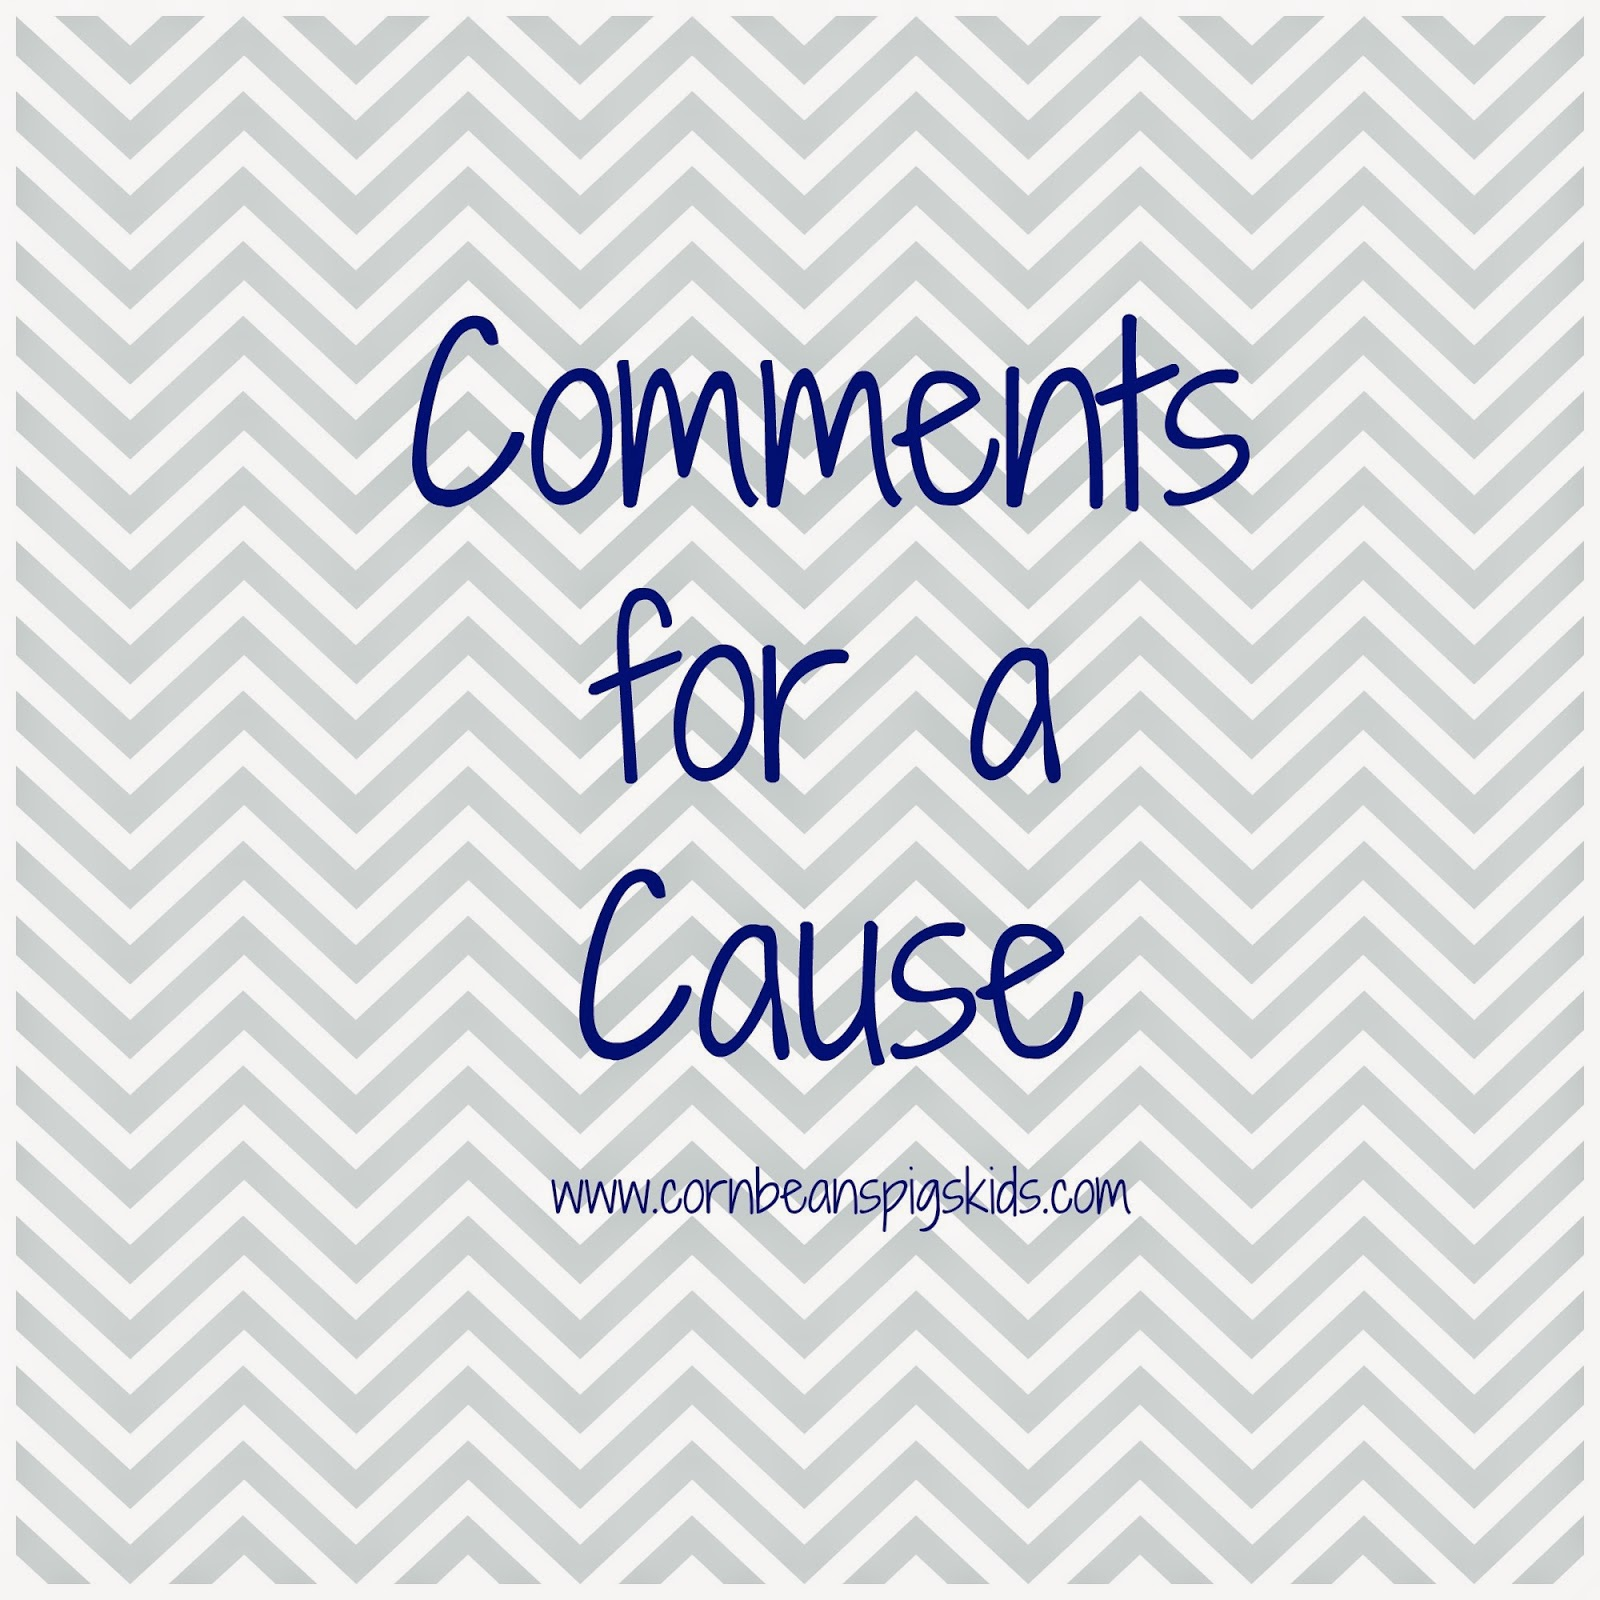 Comments for a Cause April 2015 - For each comment on Corn, Beans, Pigs & Kids blog all April long $0.50 will be donated to the Caring Pregnancy Center